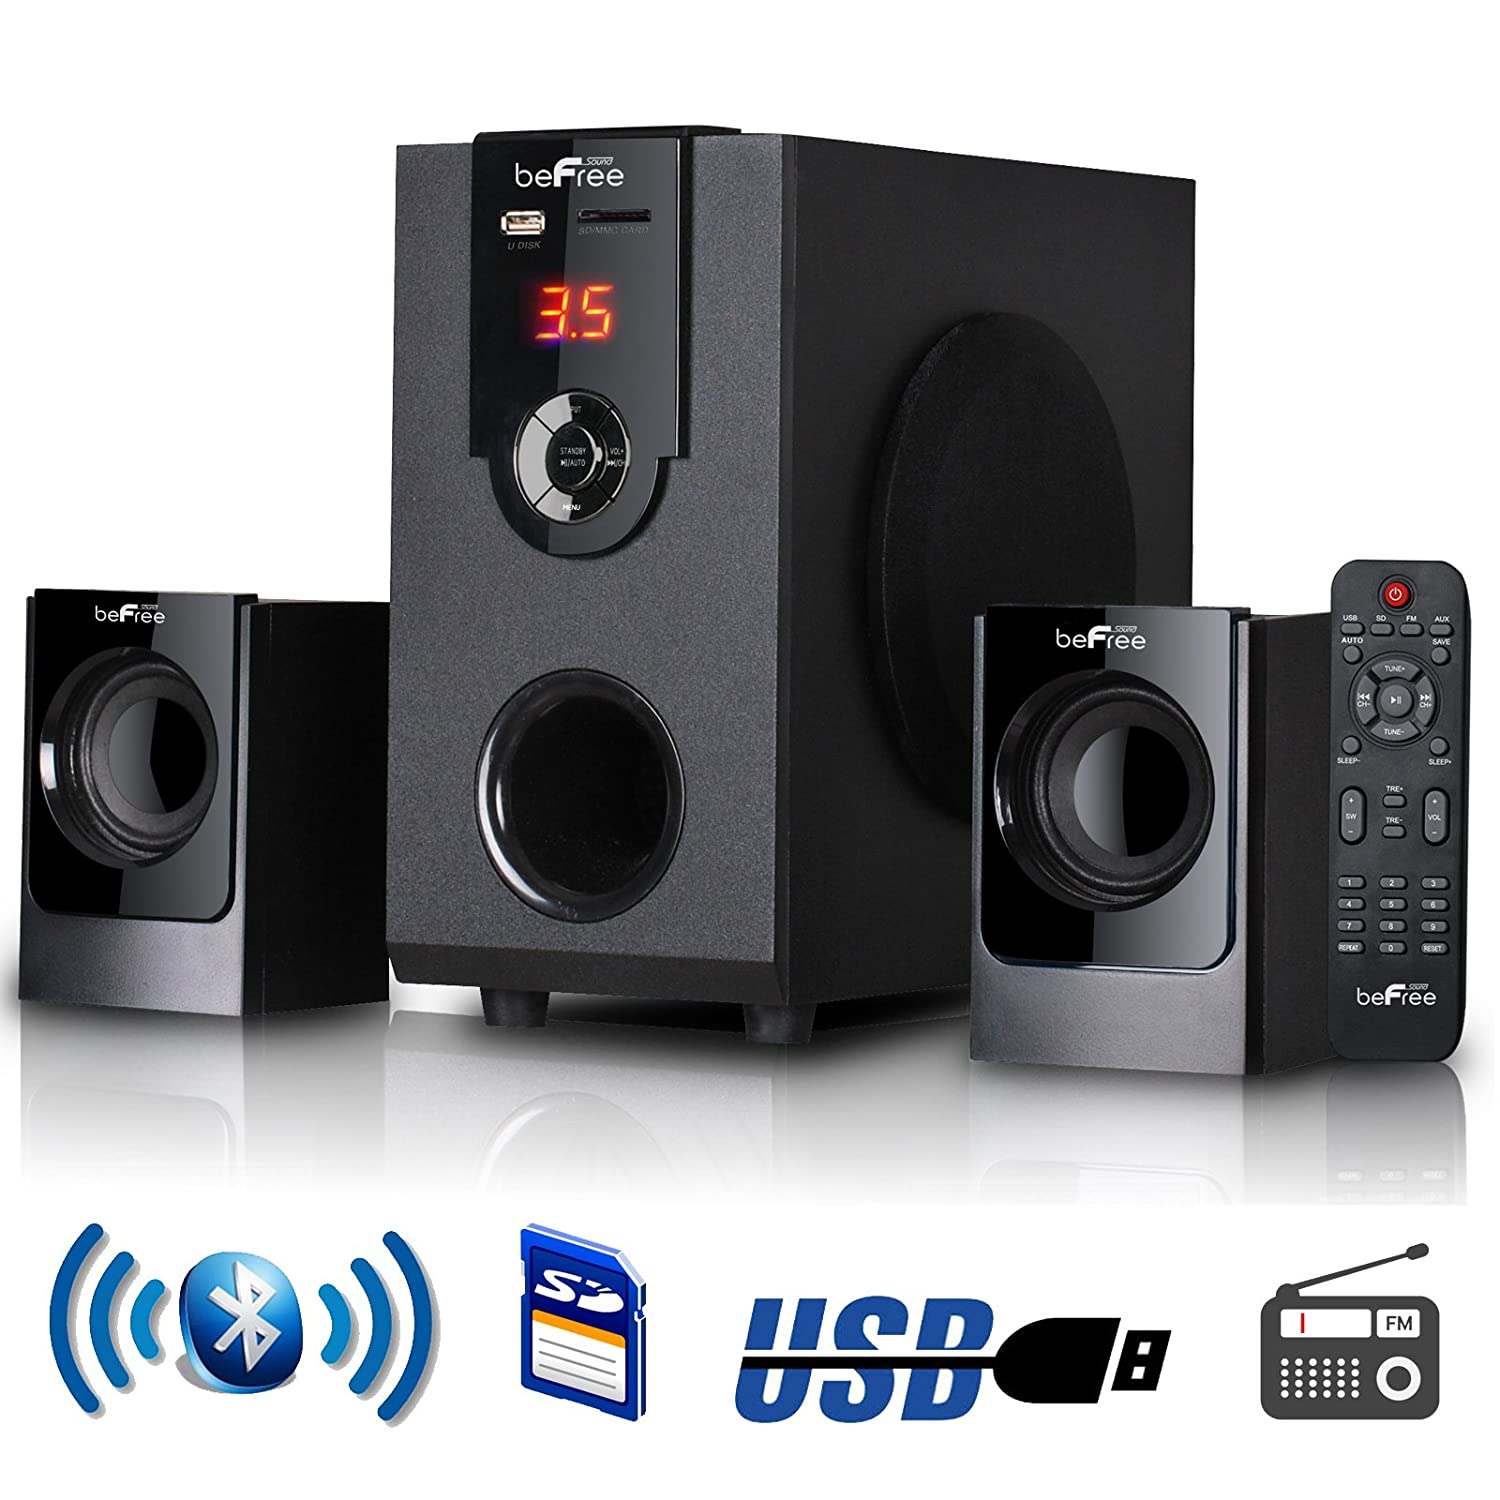 befree sound bfs 30 2 1 channel surround bluetooth home theater speaker system ebay. Black Bedroom Furniture Sets. Home Design Ideas